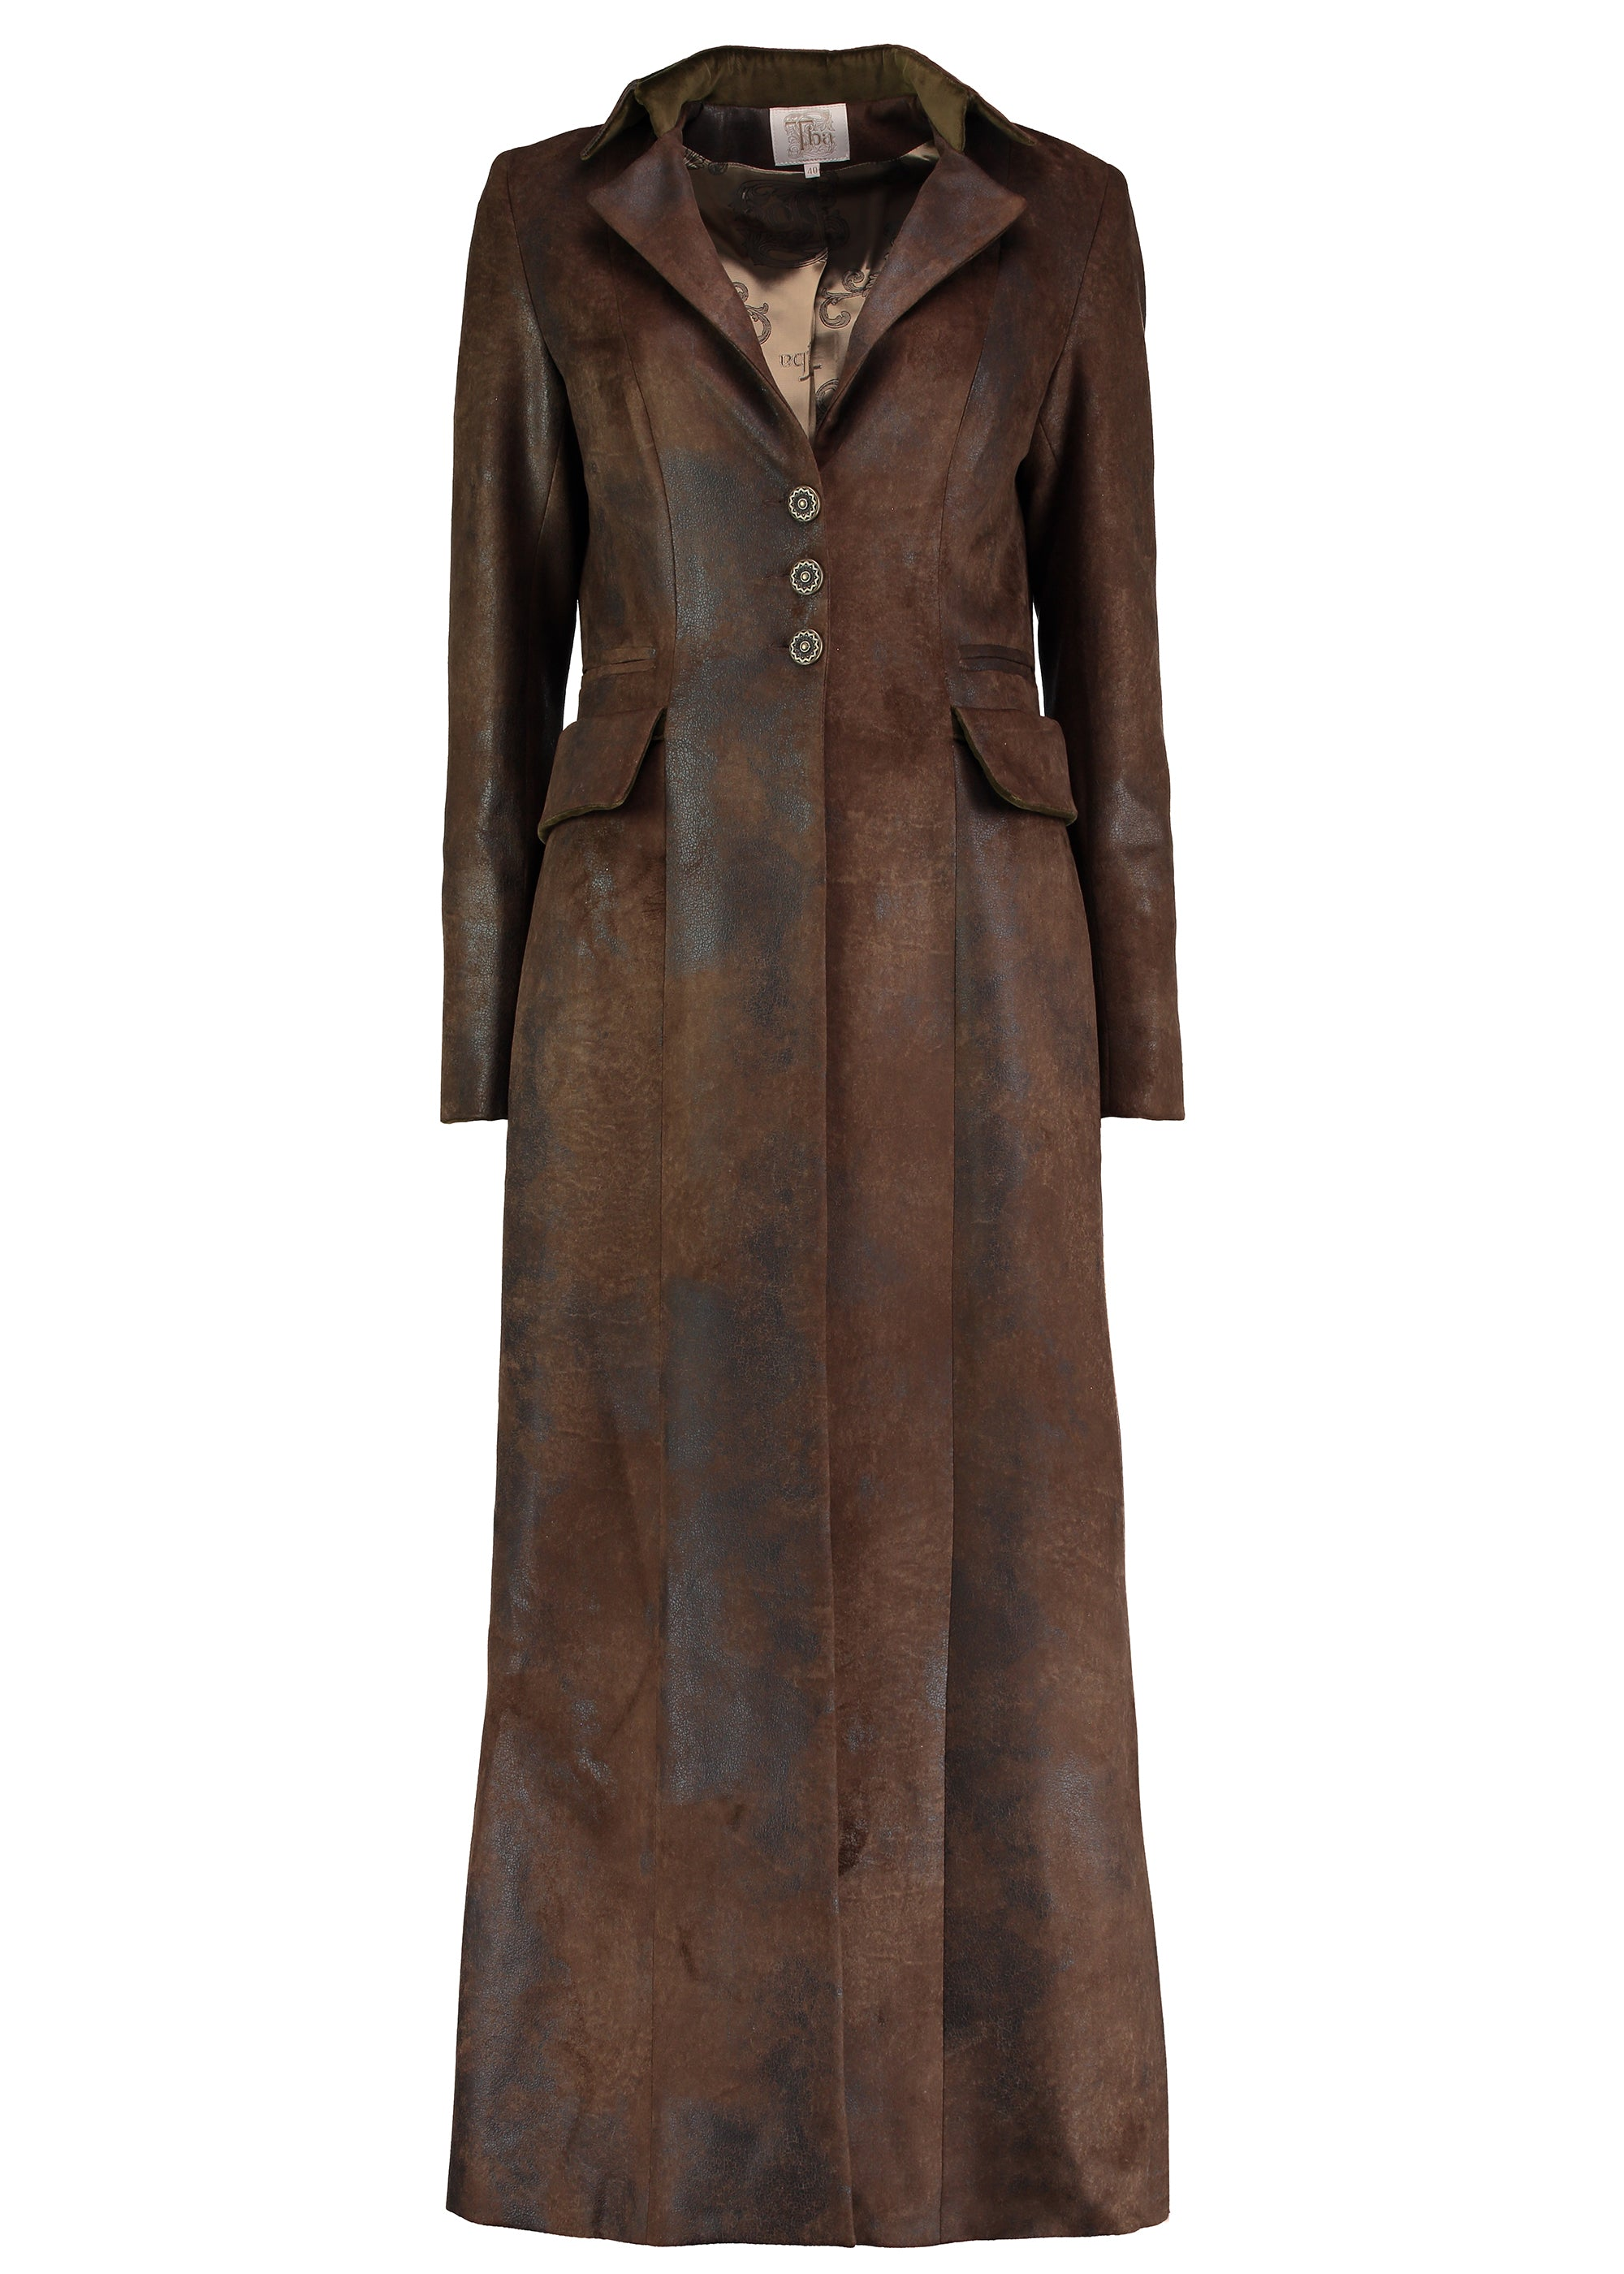 T.Ba Classic Long Coat for Ladies in Gnu